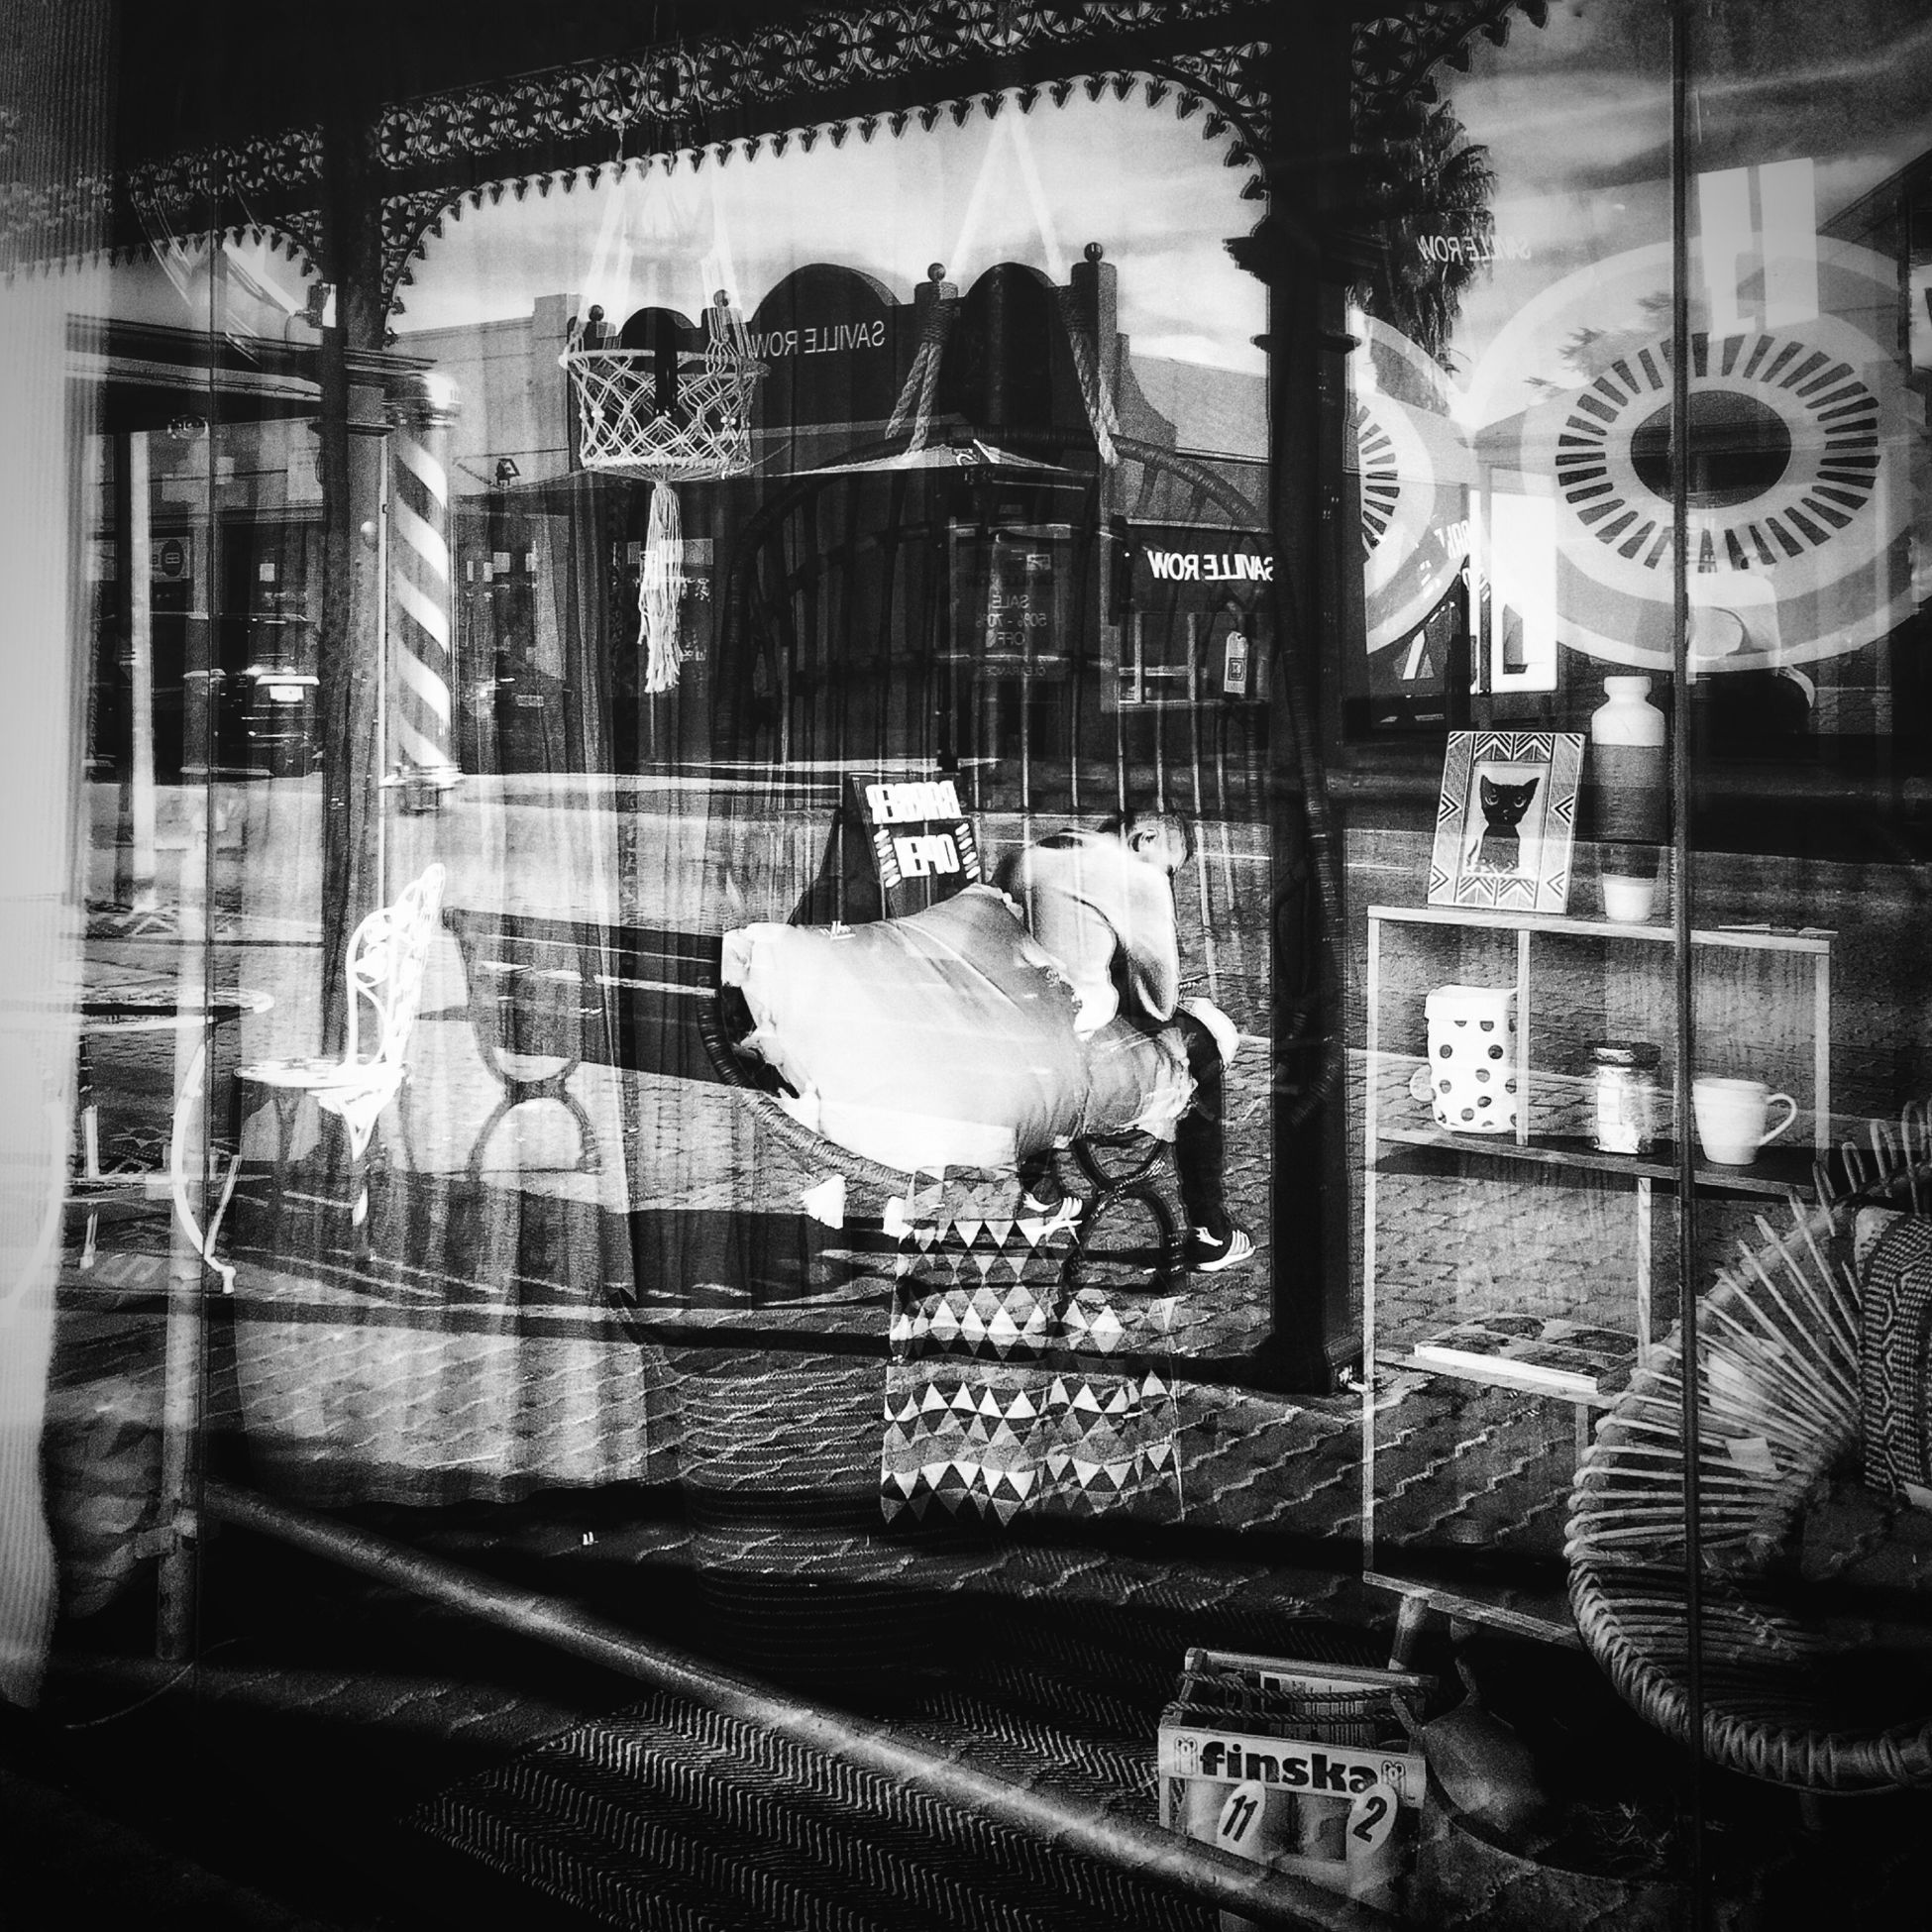 Untold Stories Streetphotography Everybodystreet Street Life Australia Black & White IPhoneography Urban Lifestyle Eye4photography  Reflections